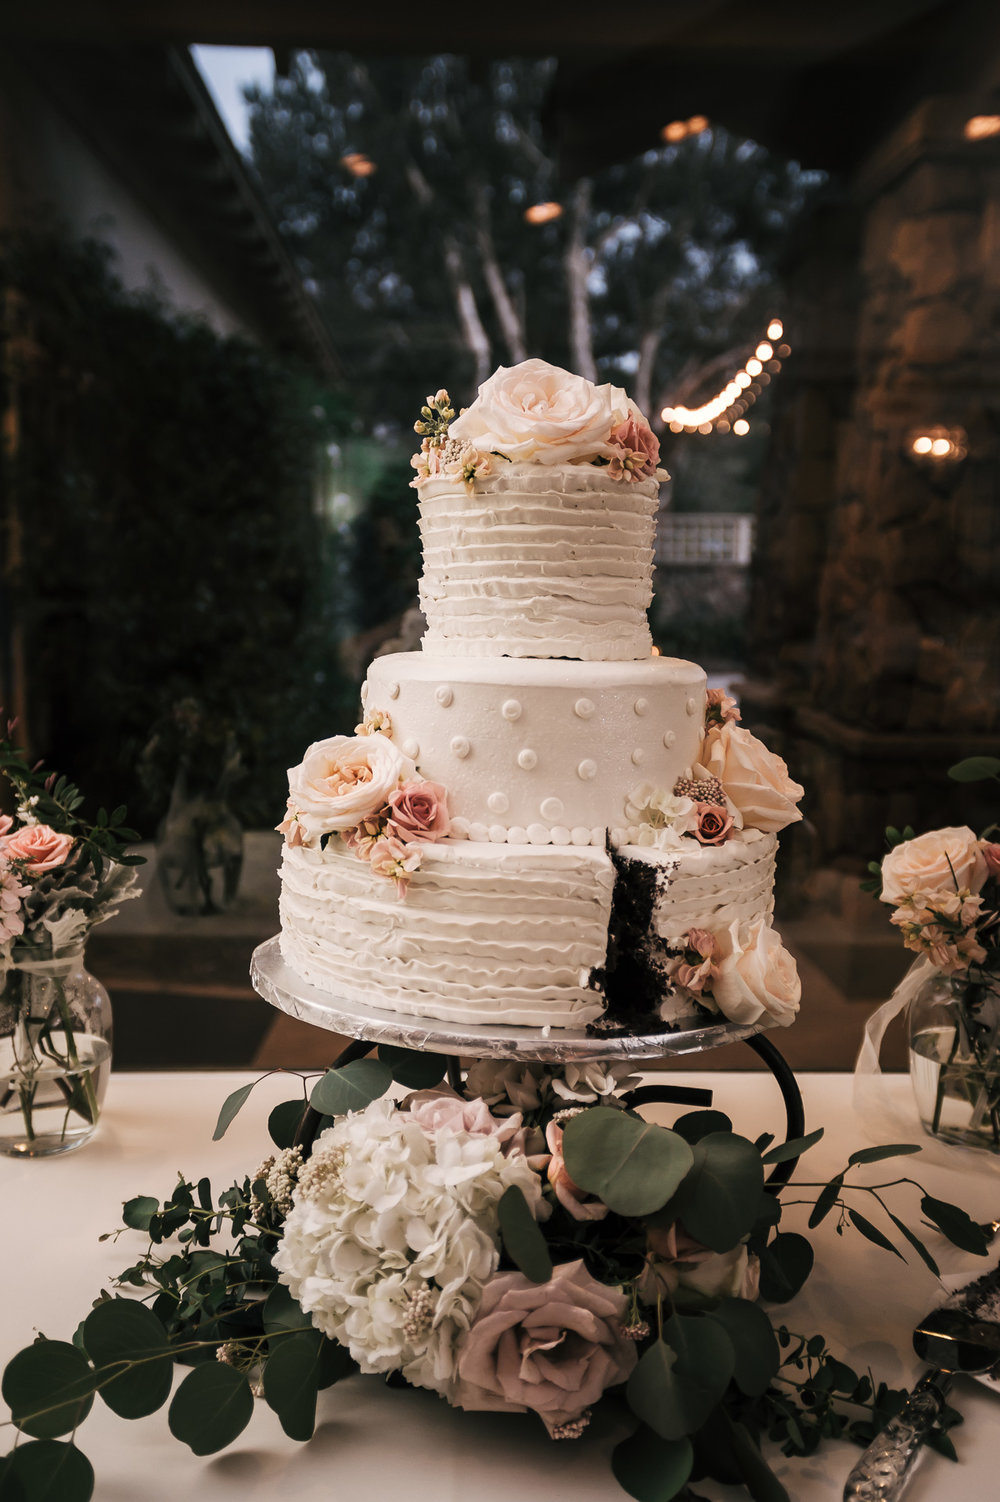 beautiful wedding cake after caek cutting at the Twin Oaks Golf Course in San Marcos, San Diegos premier wedding venue